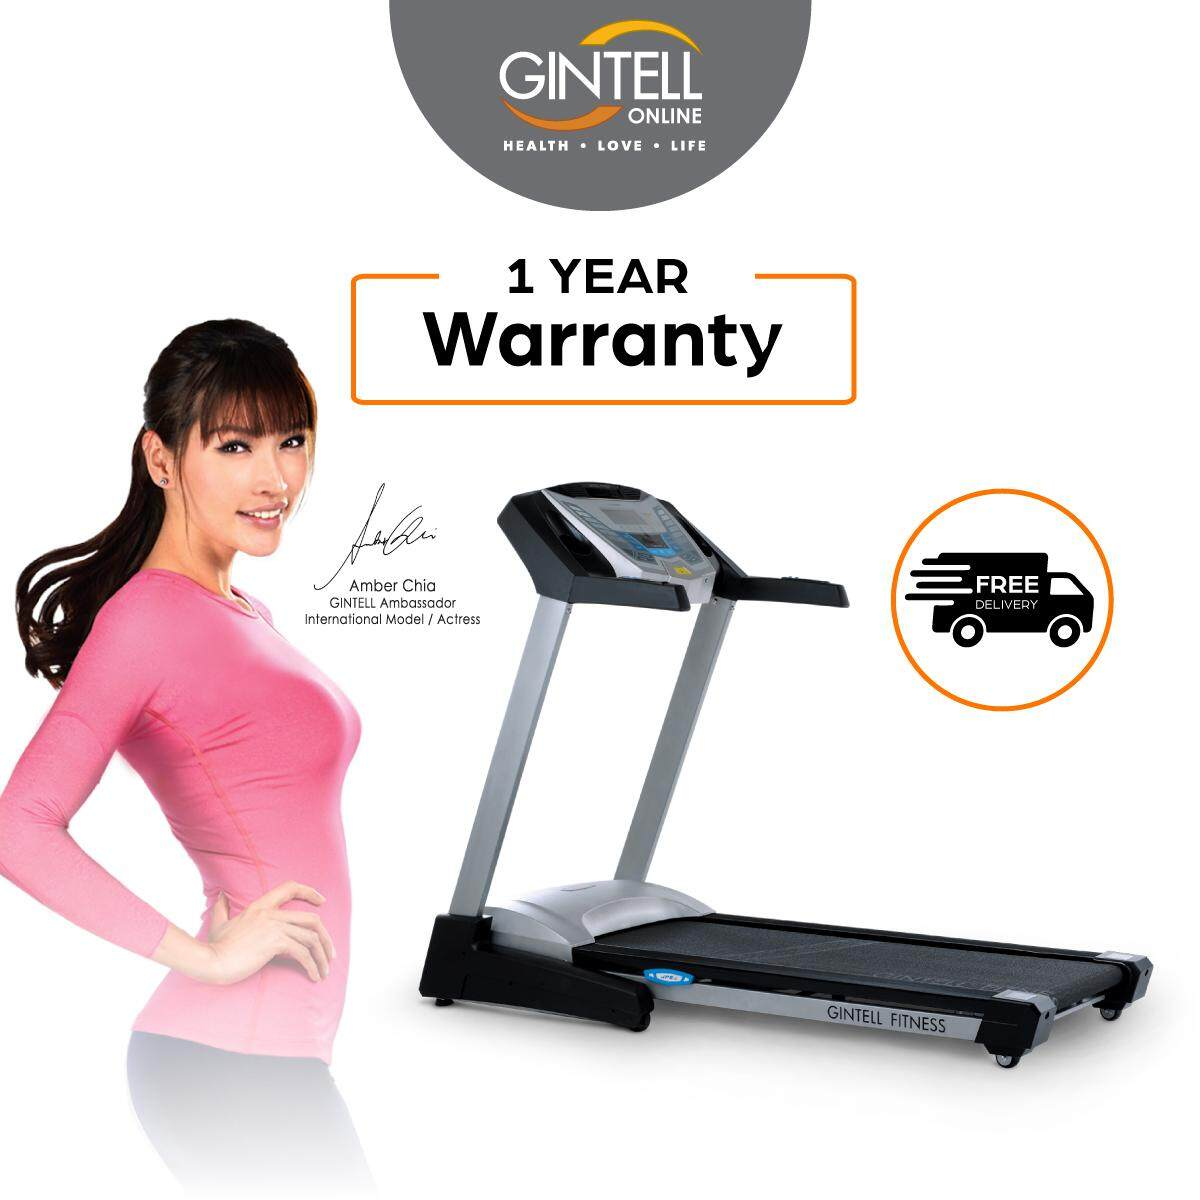 GINTELL CyberAIR Compact Treadmill FT460 (New)